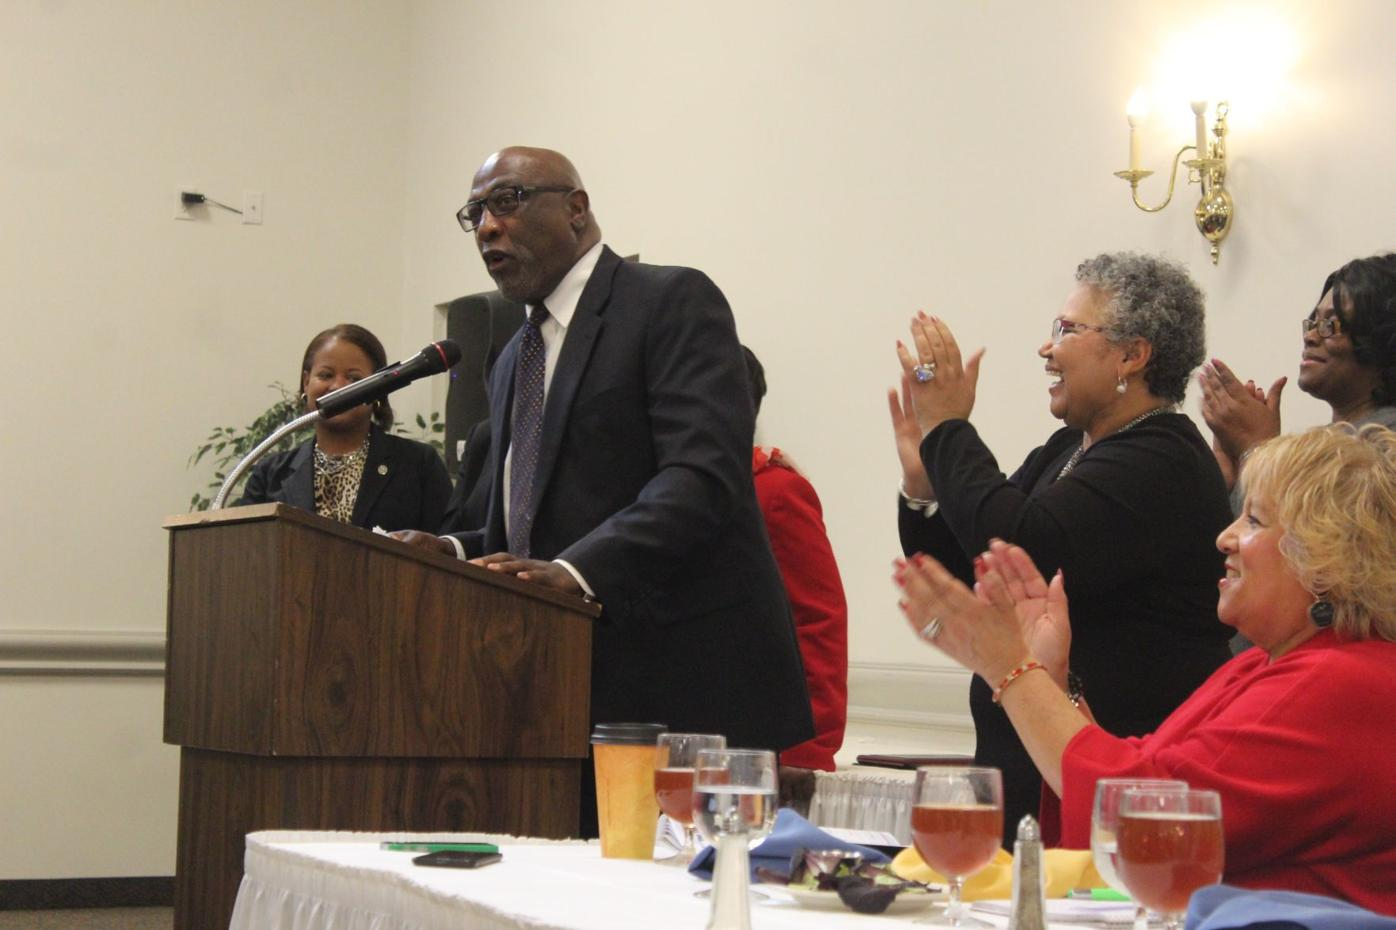 Charles County NAACP honors black law enforcement, Hall of Fame members